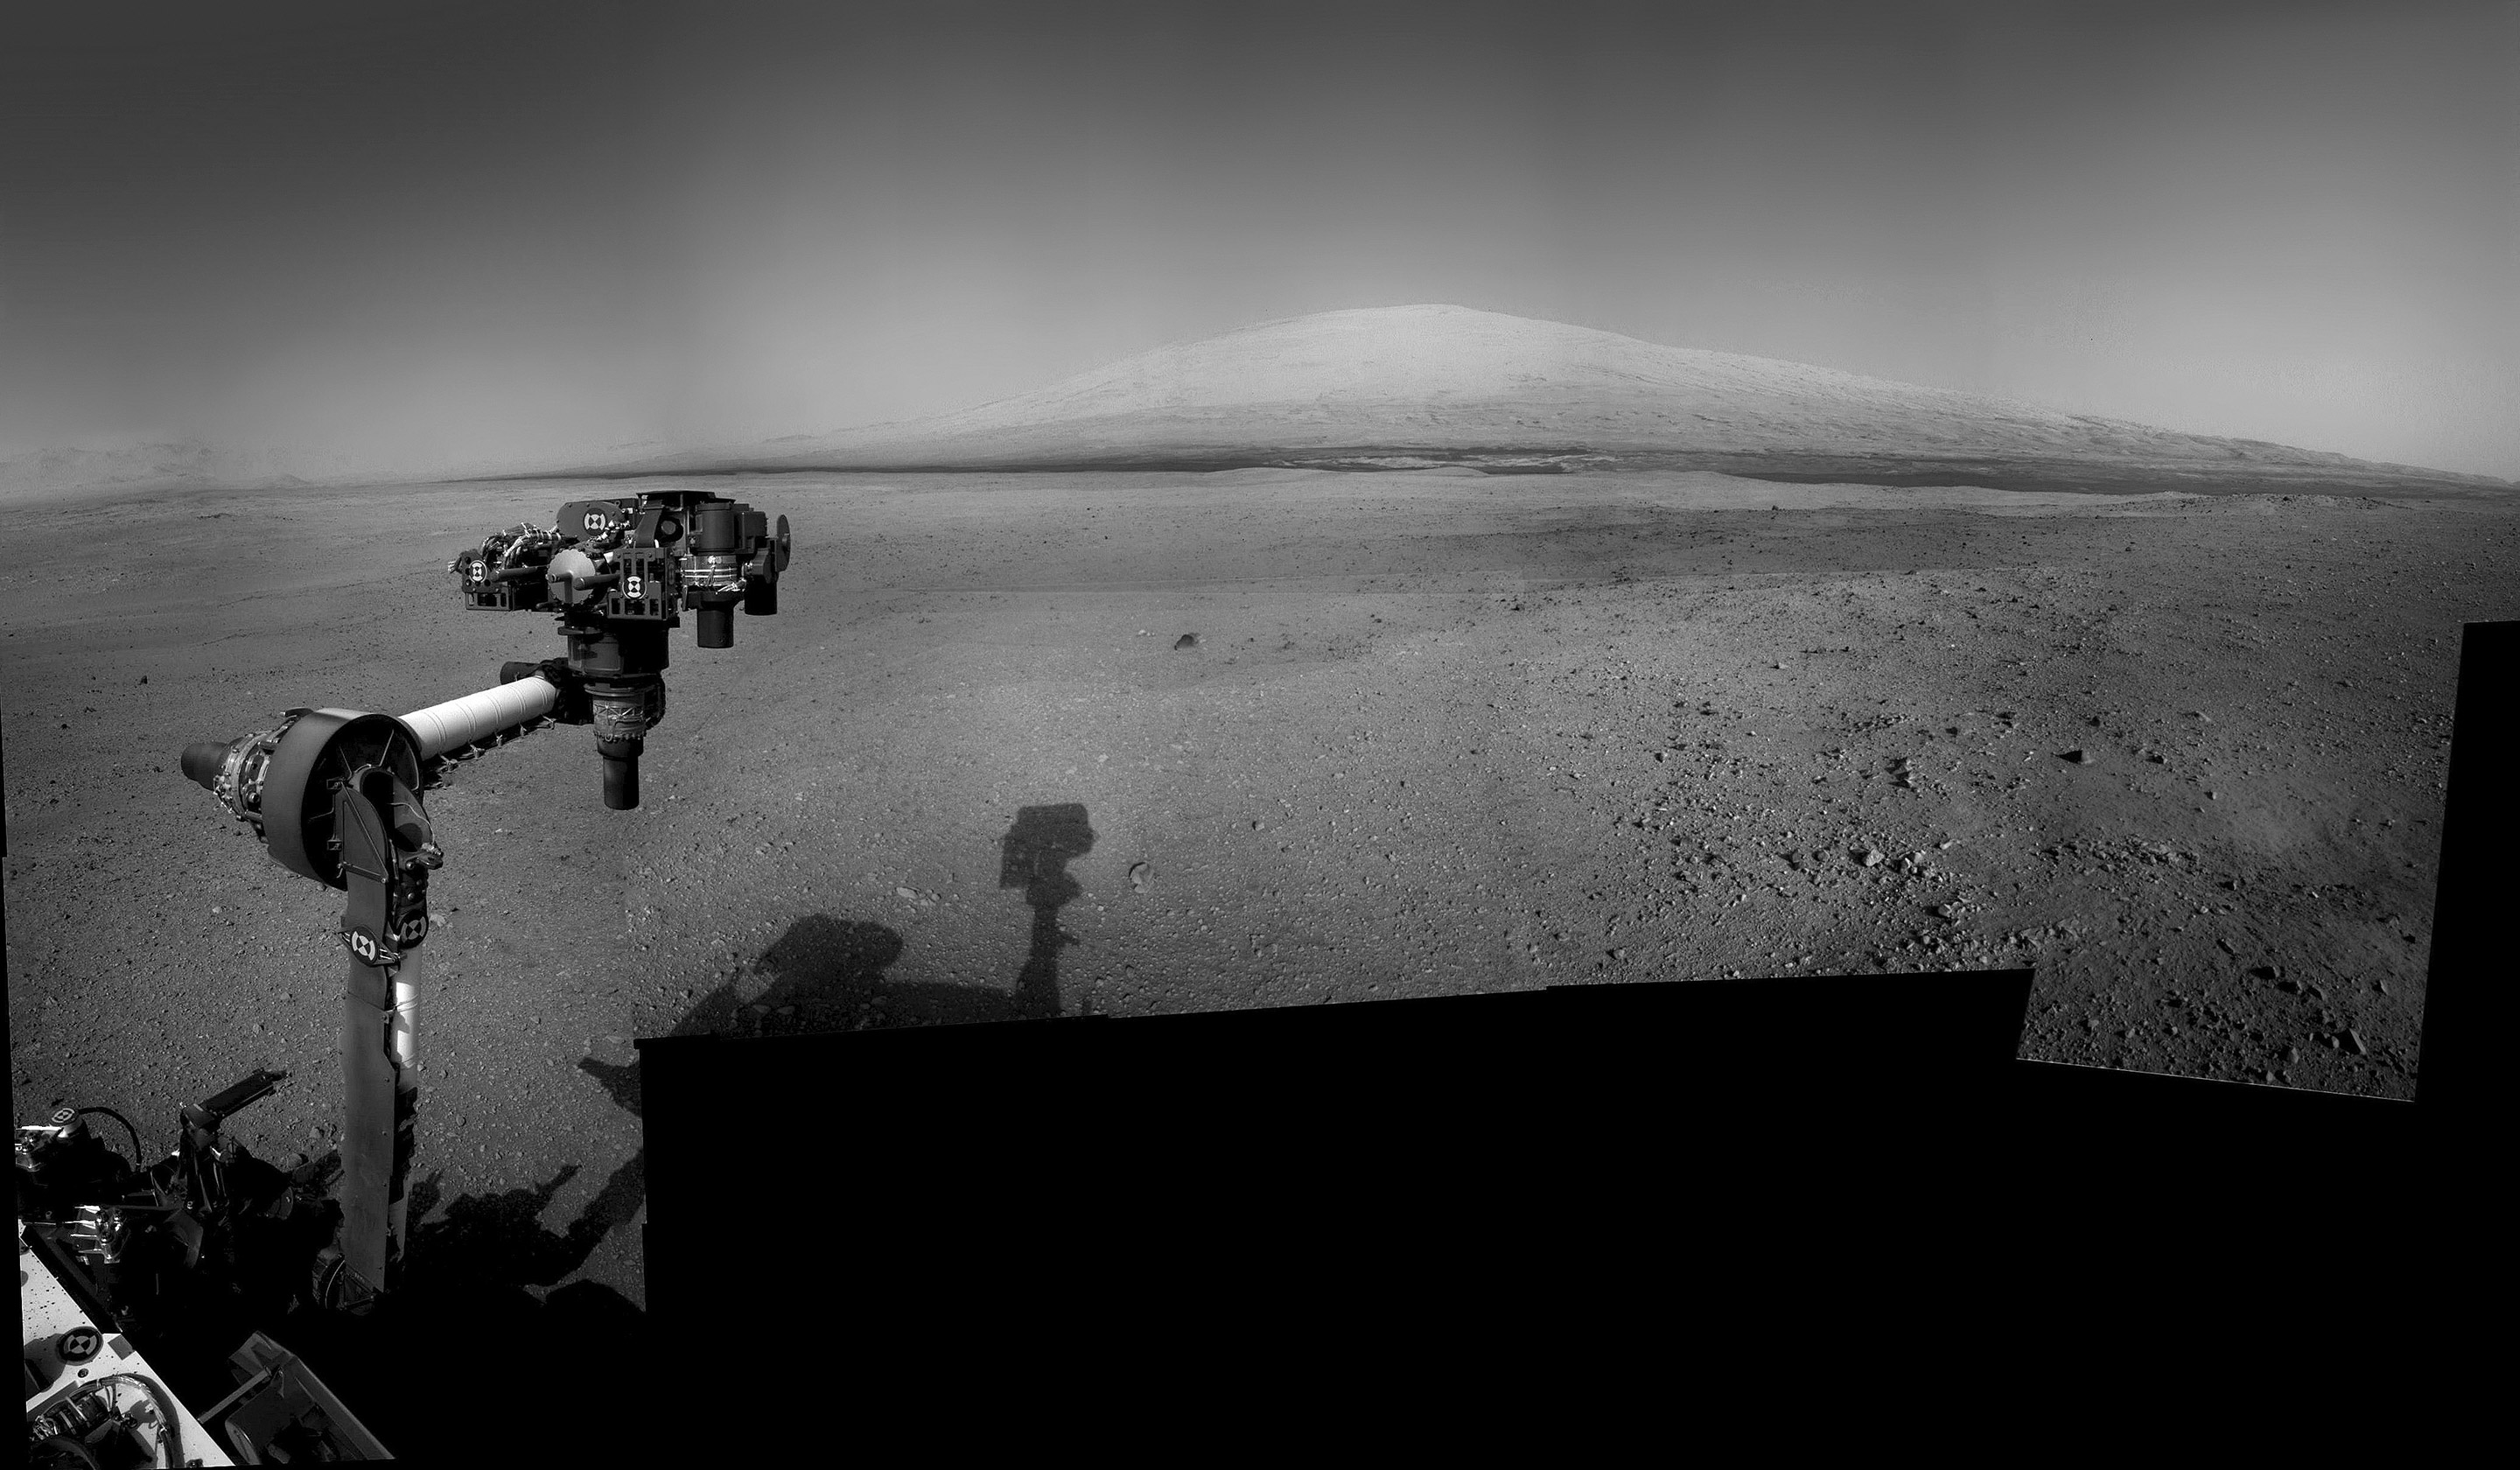 Curiosity Points the way to Mount Sharp. The rover deployed the robotic arm on Aug. 20 and aimed it directly at her ultimate Martian destination - the three mile high mountain named Mount Sharp. Credit: NASA/JPL-Caltech/Ken Kremer/Marco Di Lorenzo